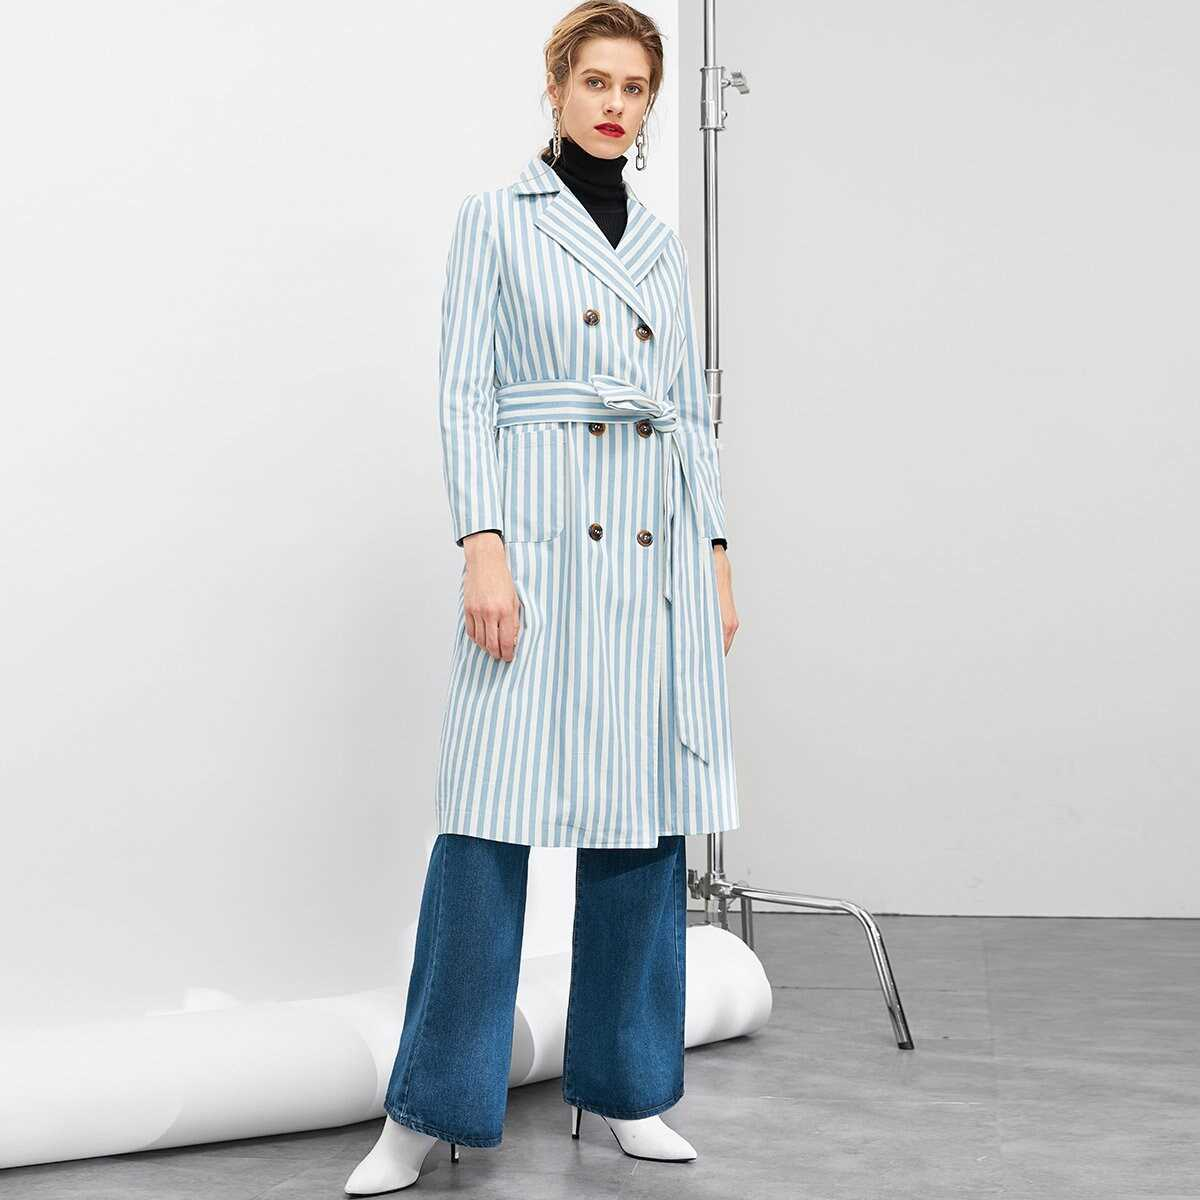 Double Breasted Belted Striped Trench Coat - Shein - GOOFASH